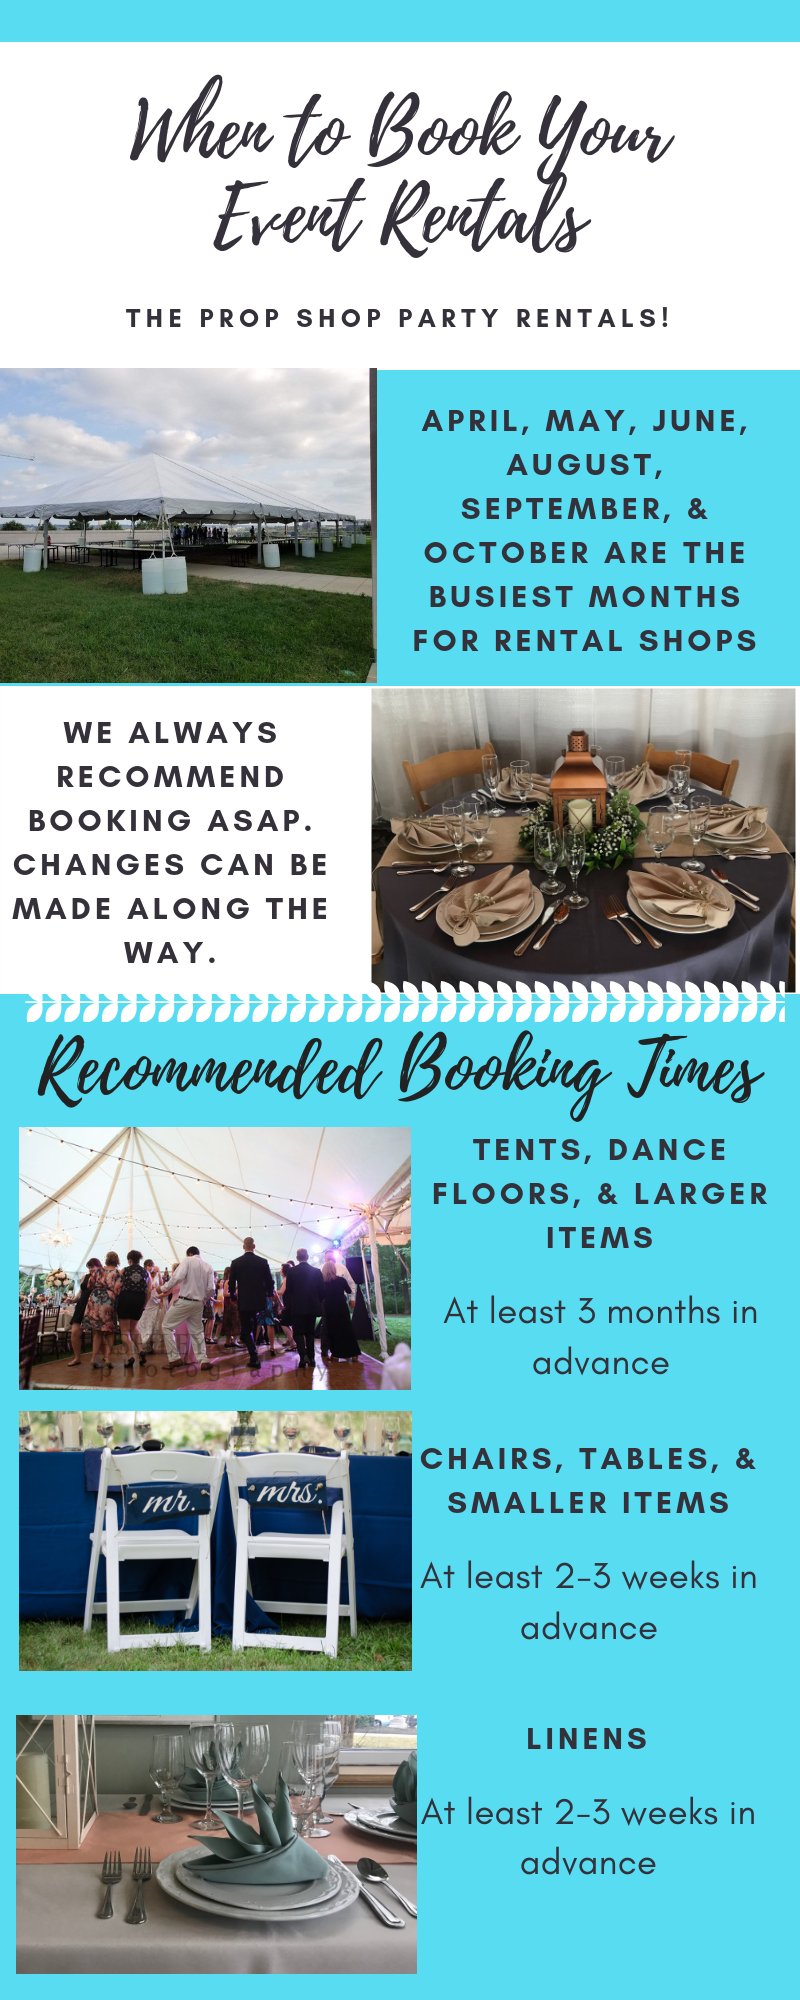 When to Book Your Event Rentals.png